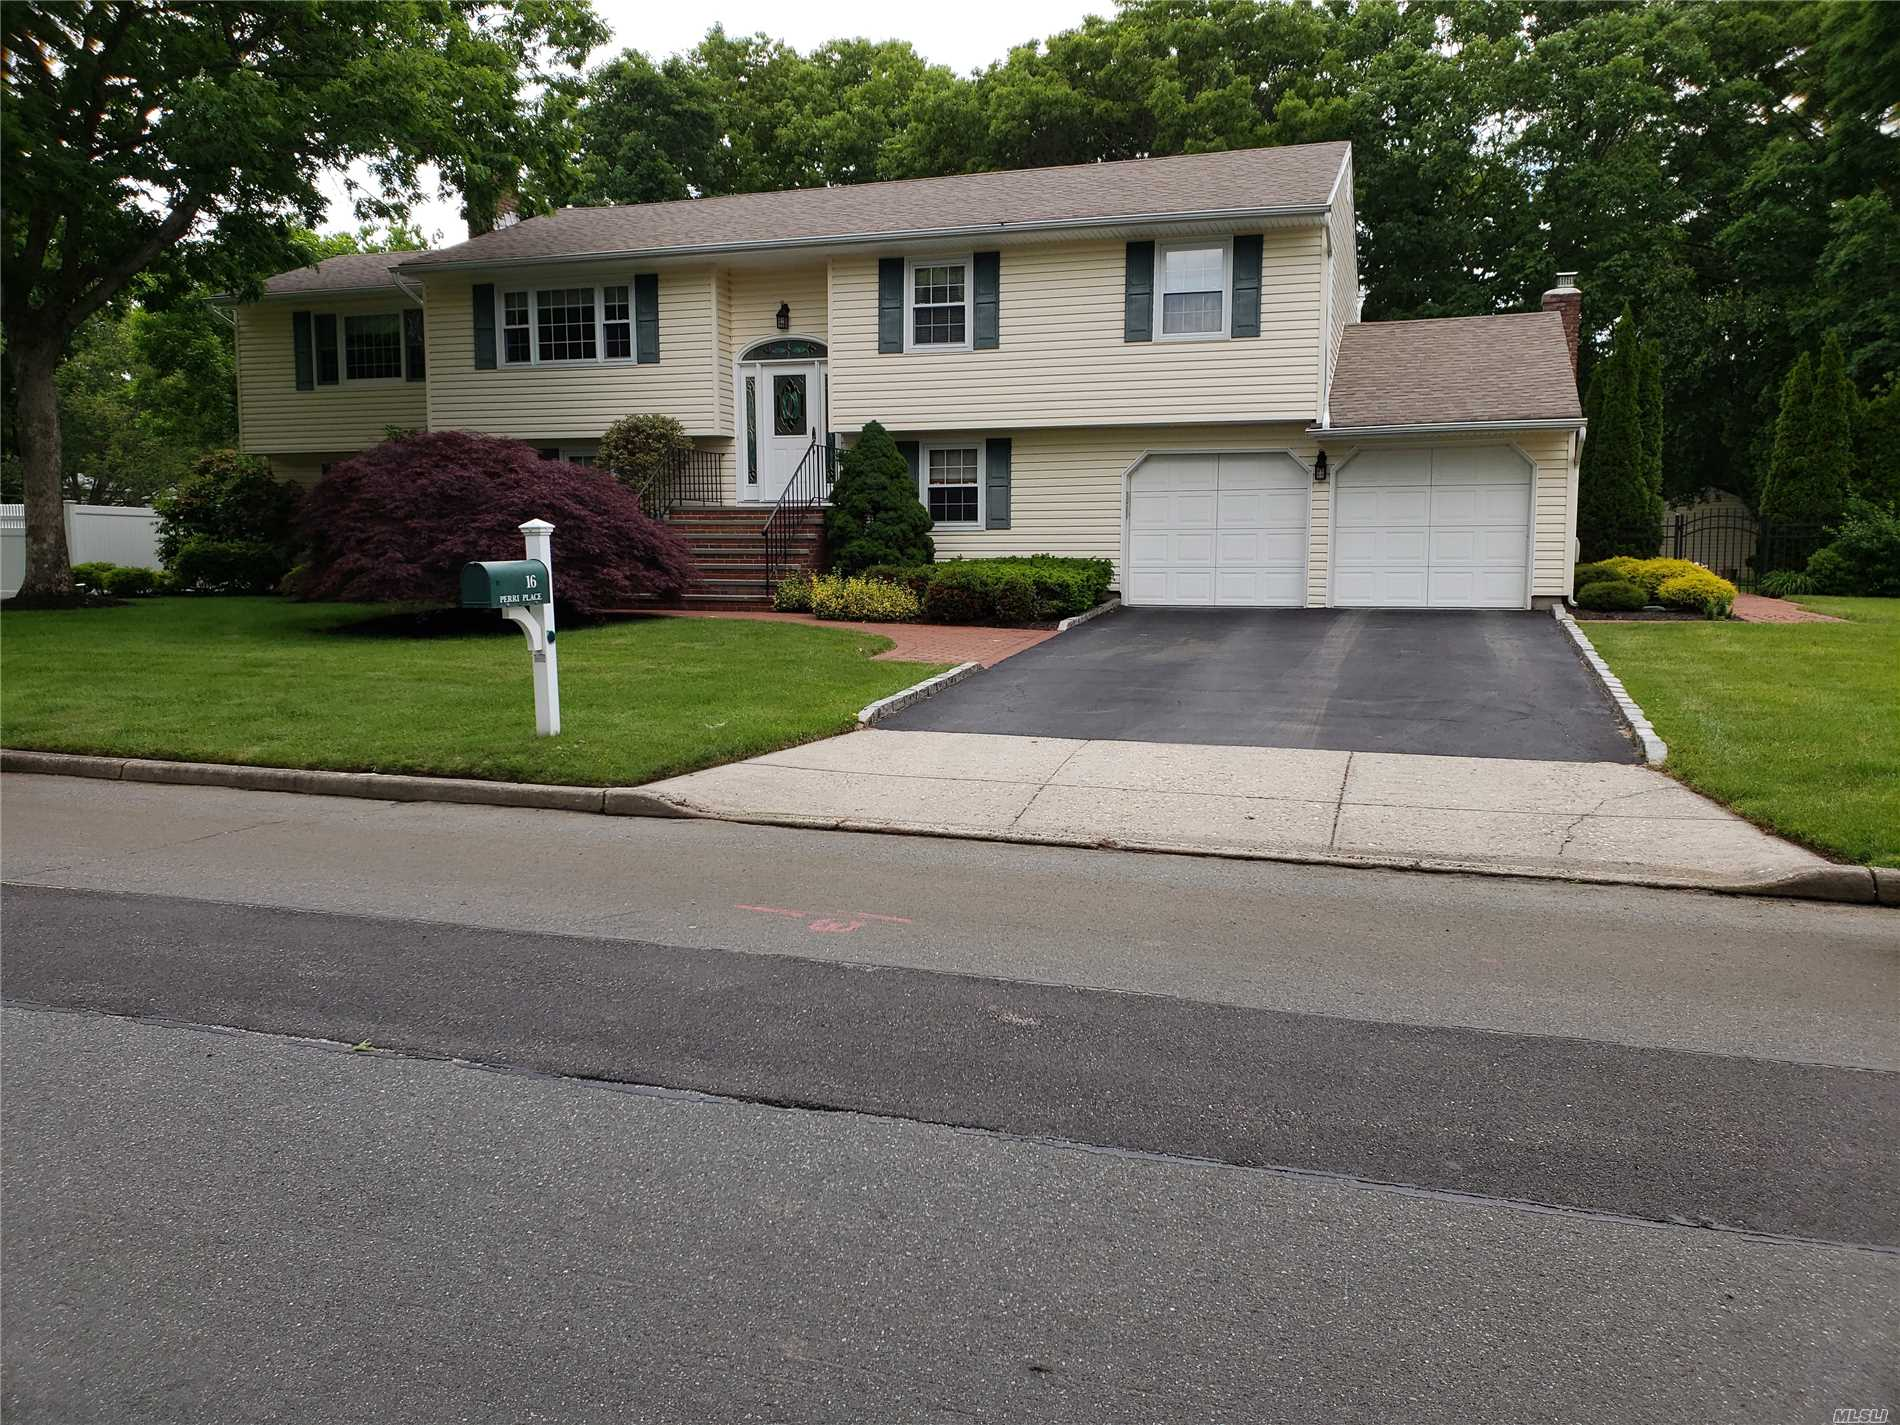 16 Perri Pl - Dix Hills, New York